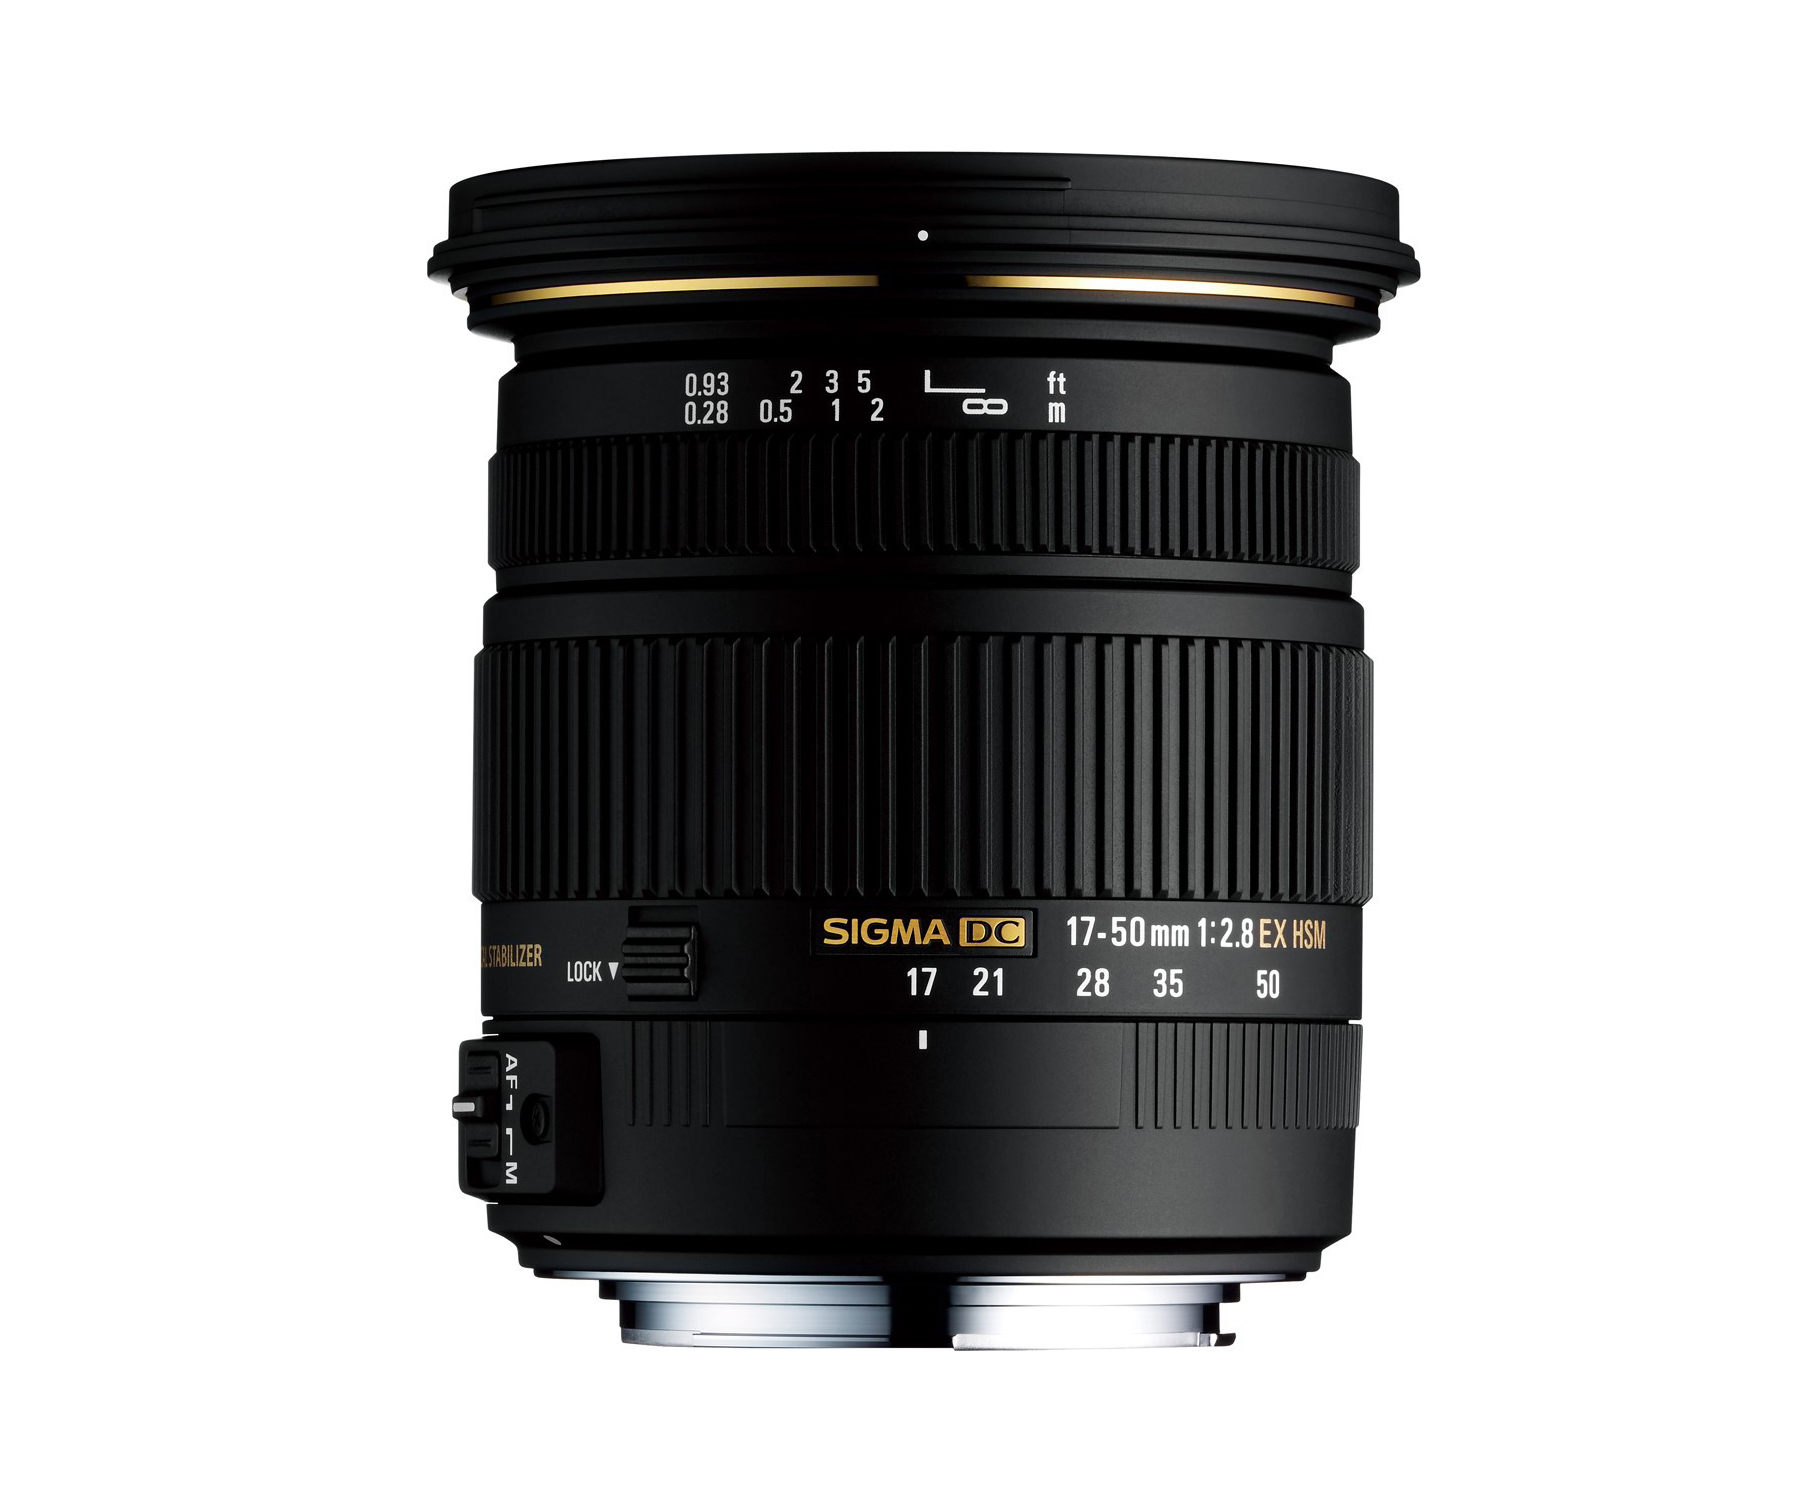 SIGMA 17-50 mm f2.8 EX DC OS HSM for Nikon